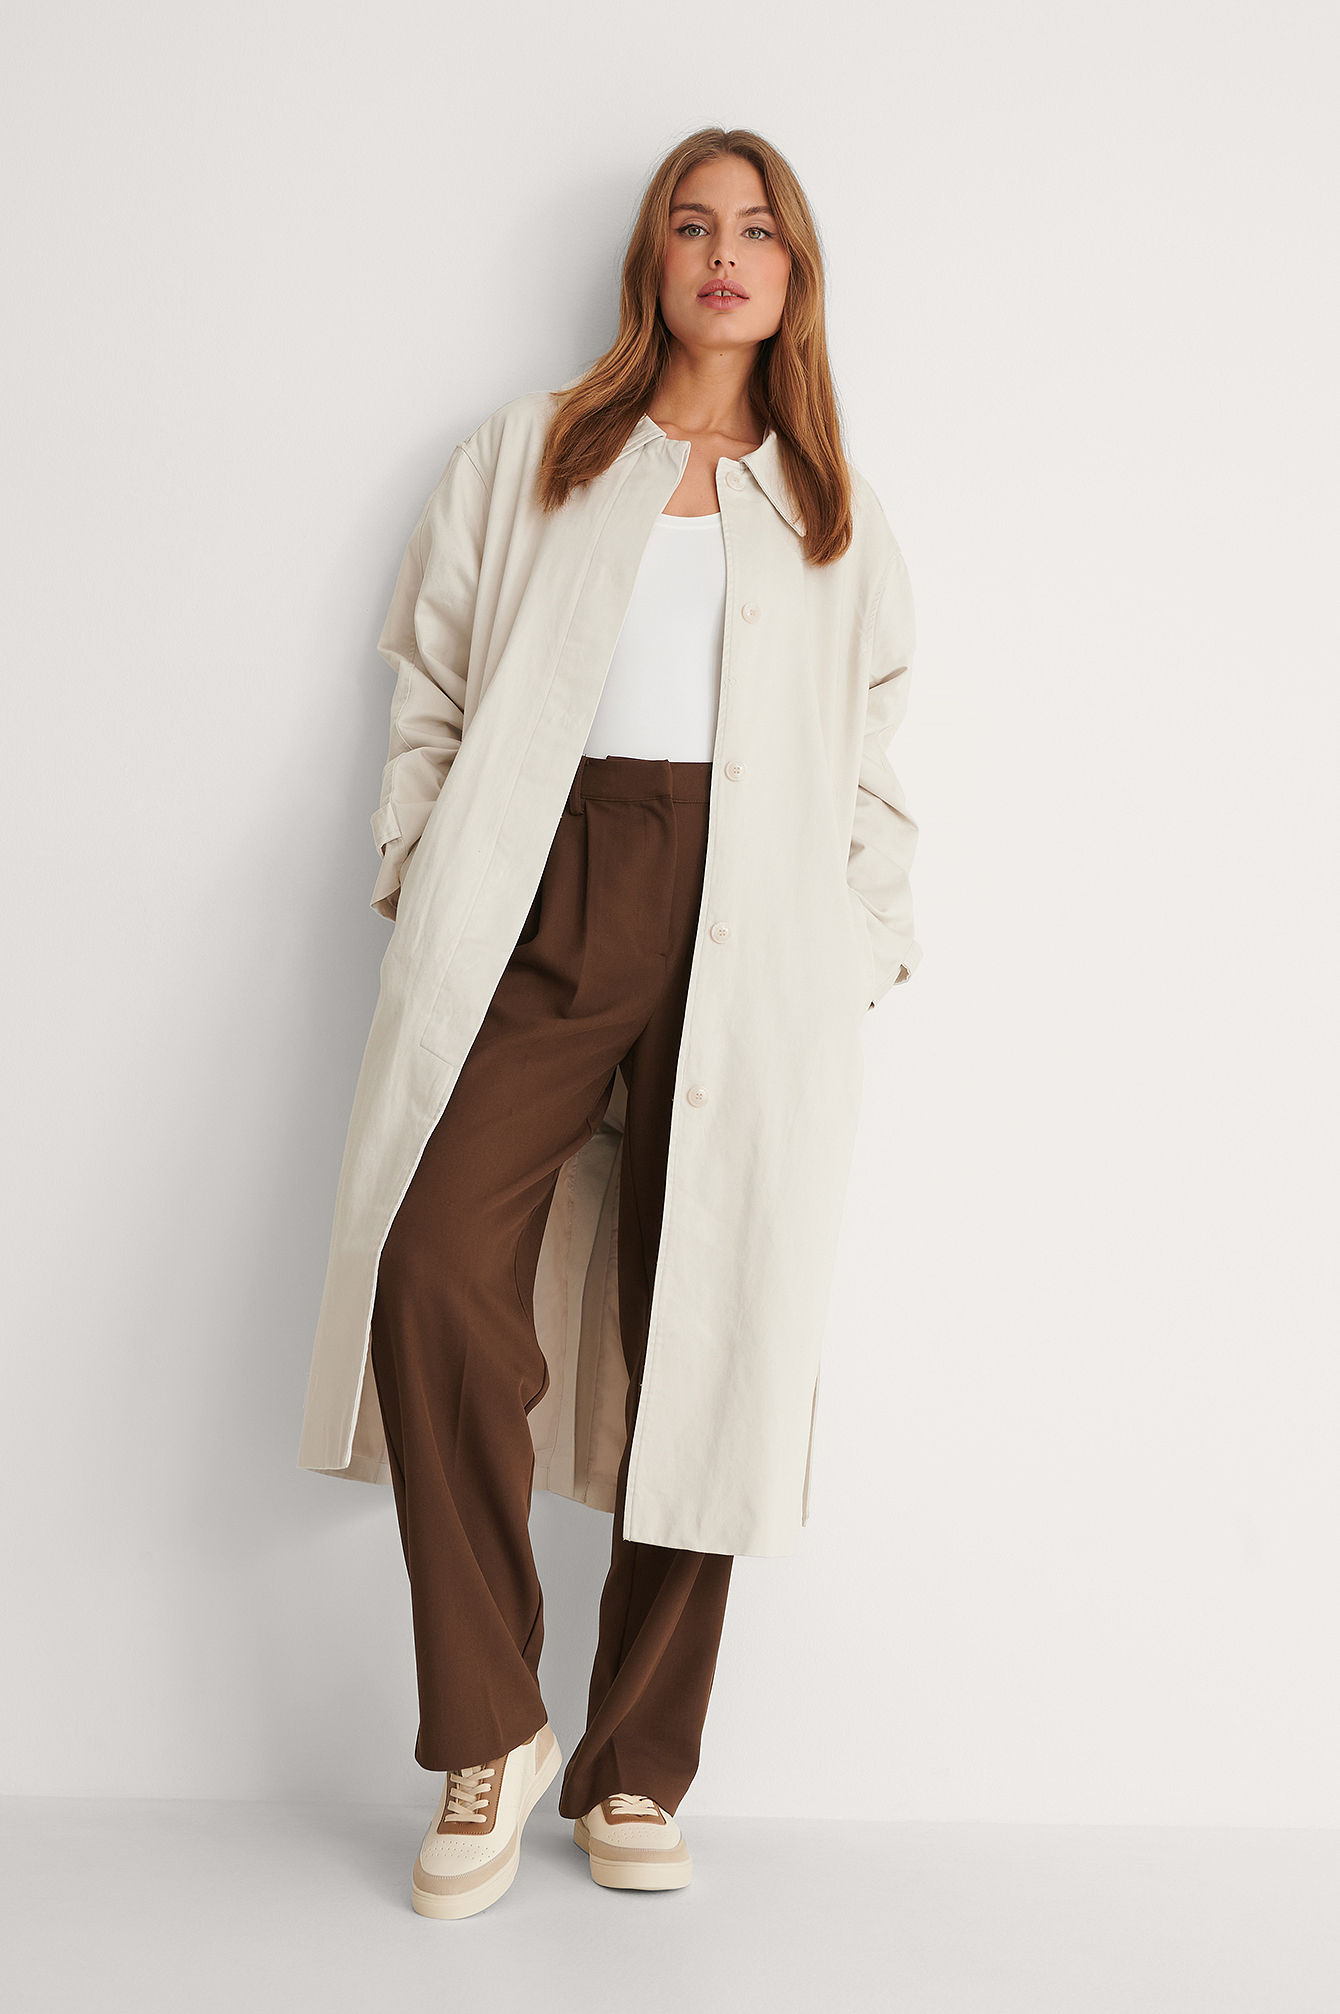 Light Beige Manteau Ceinturé